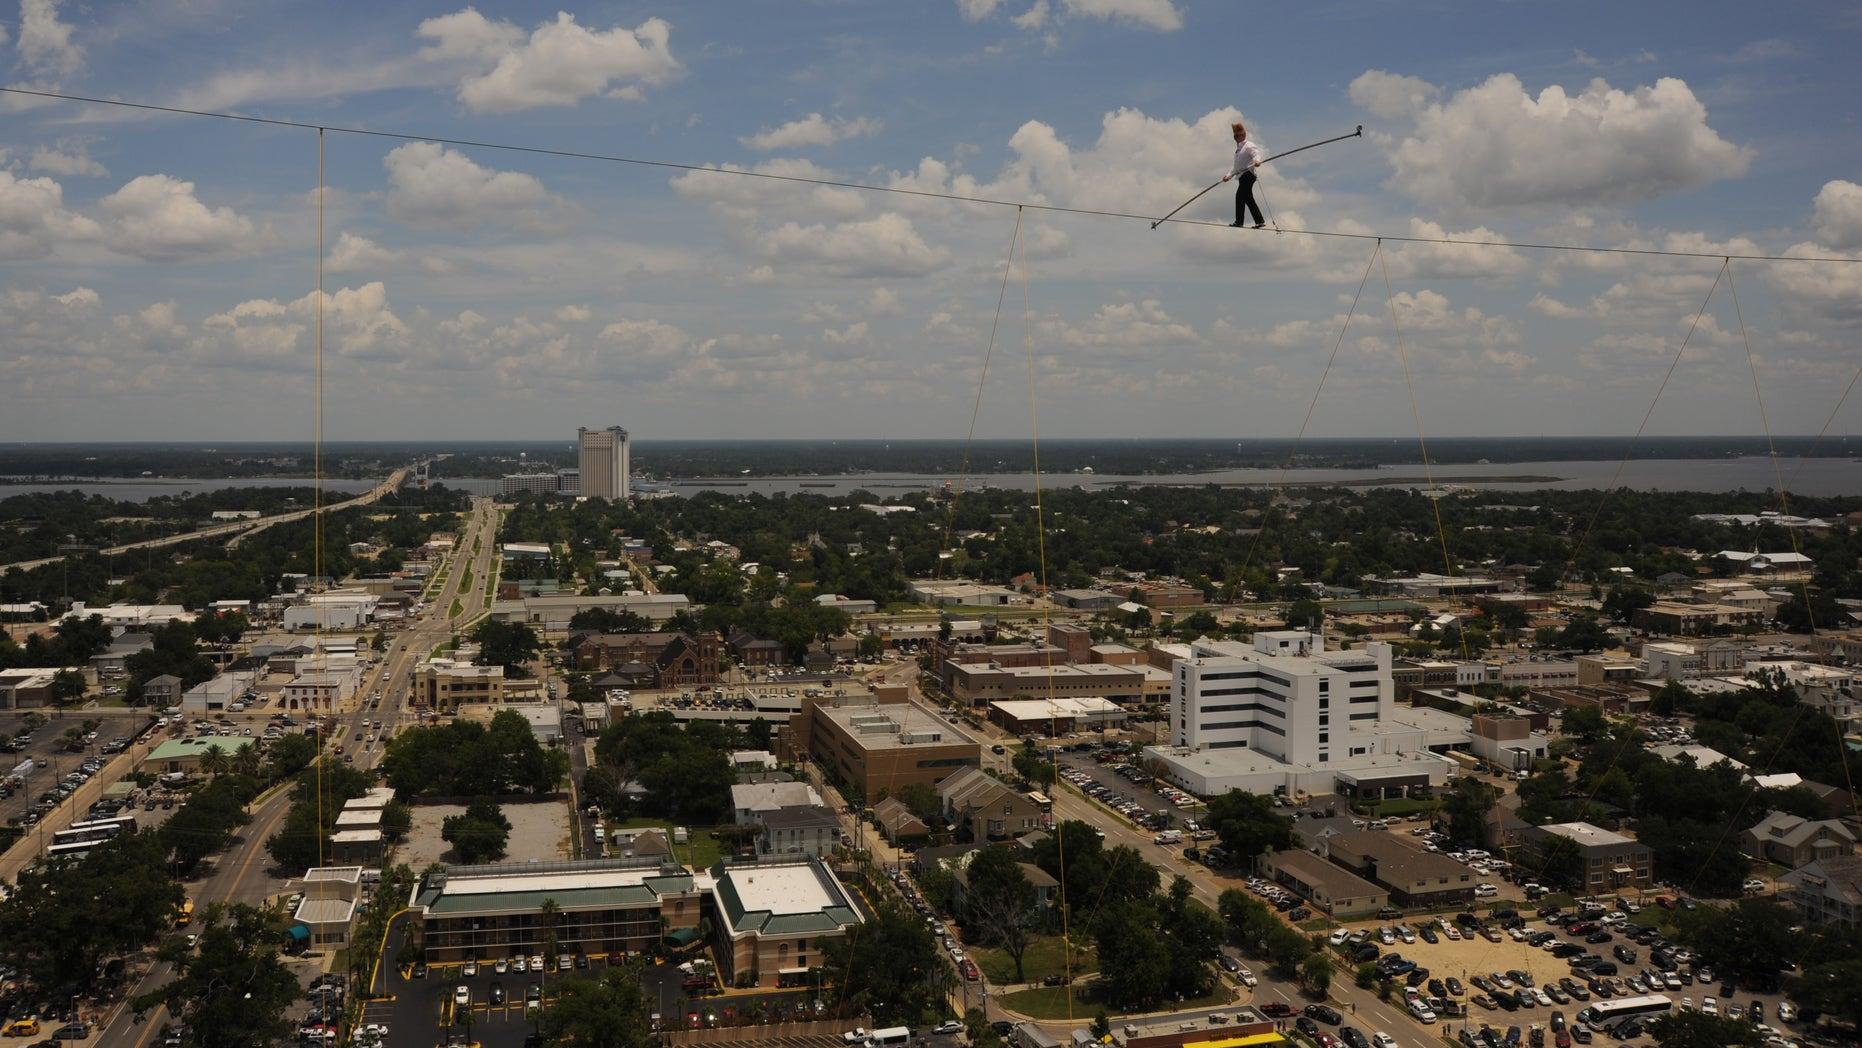 June 21: Comic and daredevil performer Bello Nock walks across a tightrope suspended 32 stories high between spans of the Beau Rivage Resort & Casino in Biloxi, Miss.